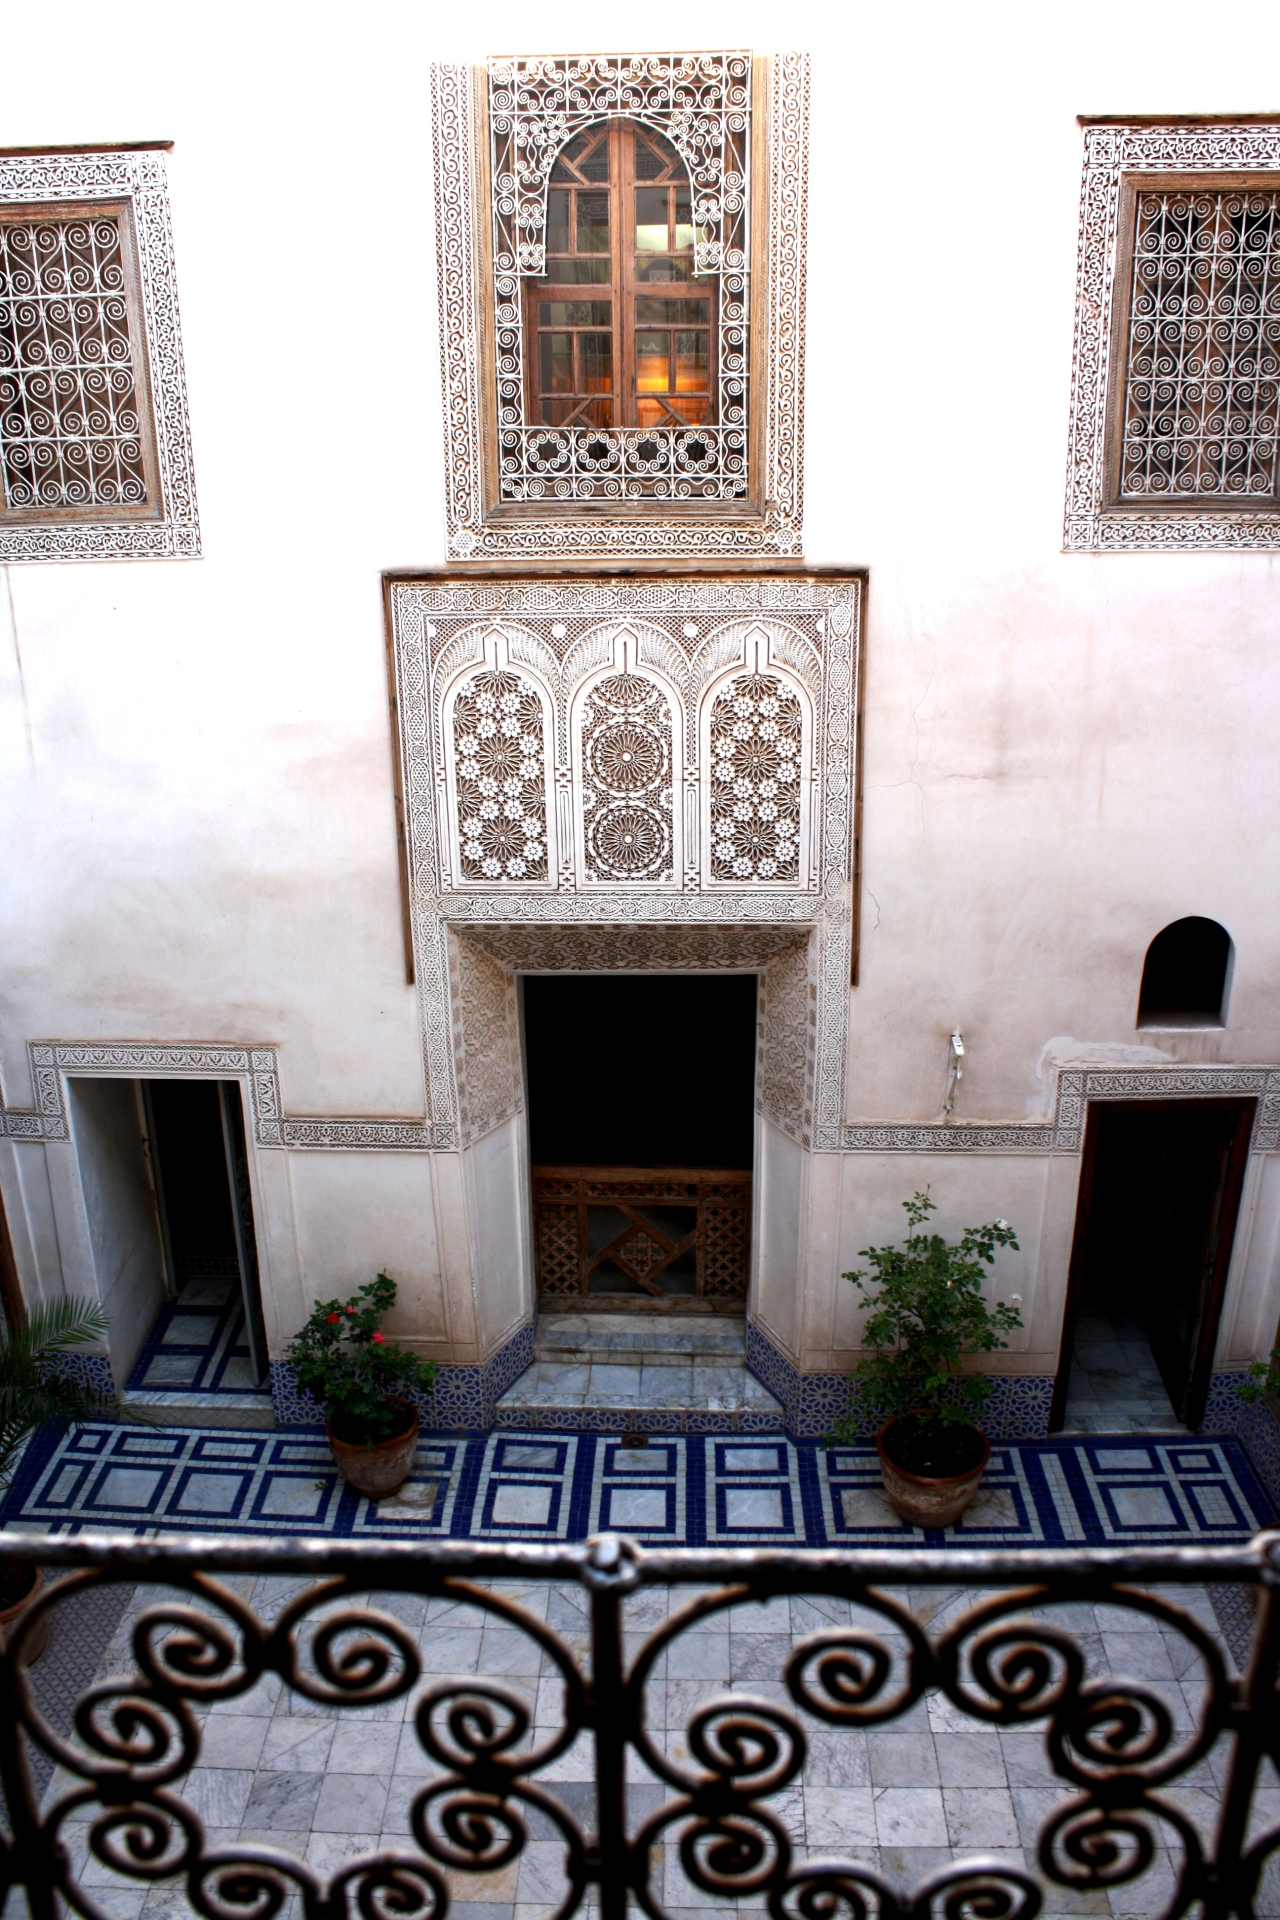 Marrakech: Maison Tiskiwin; a magical world of African oddities